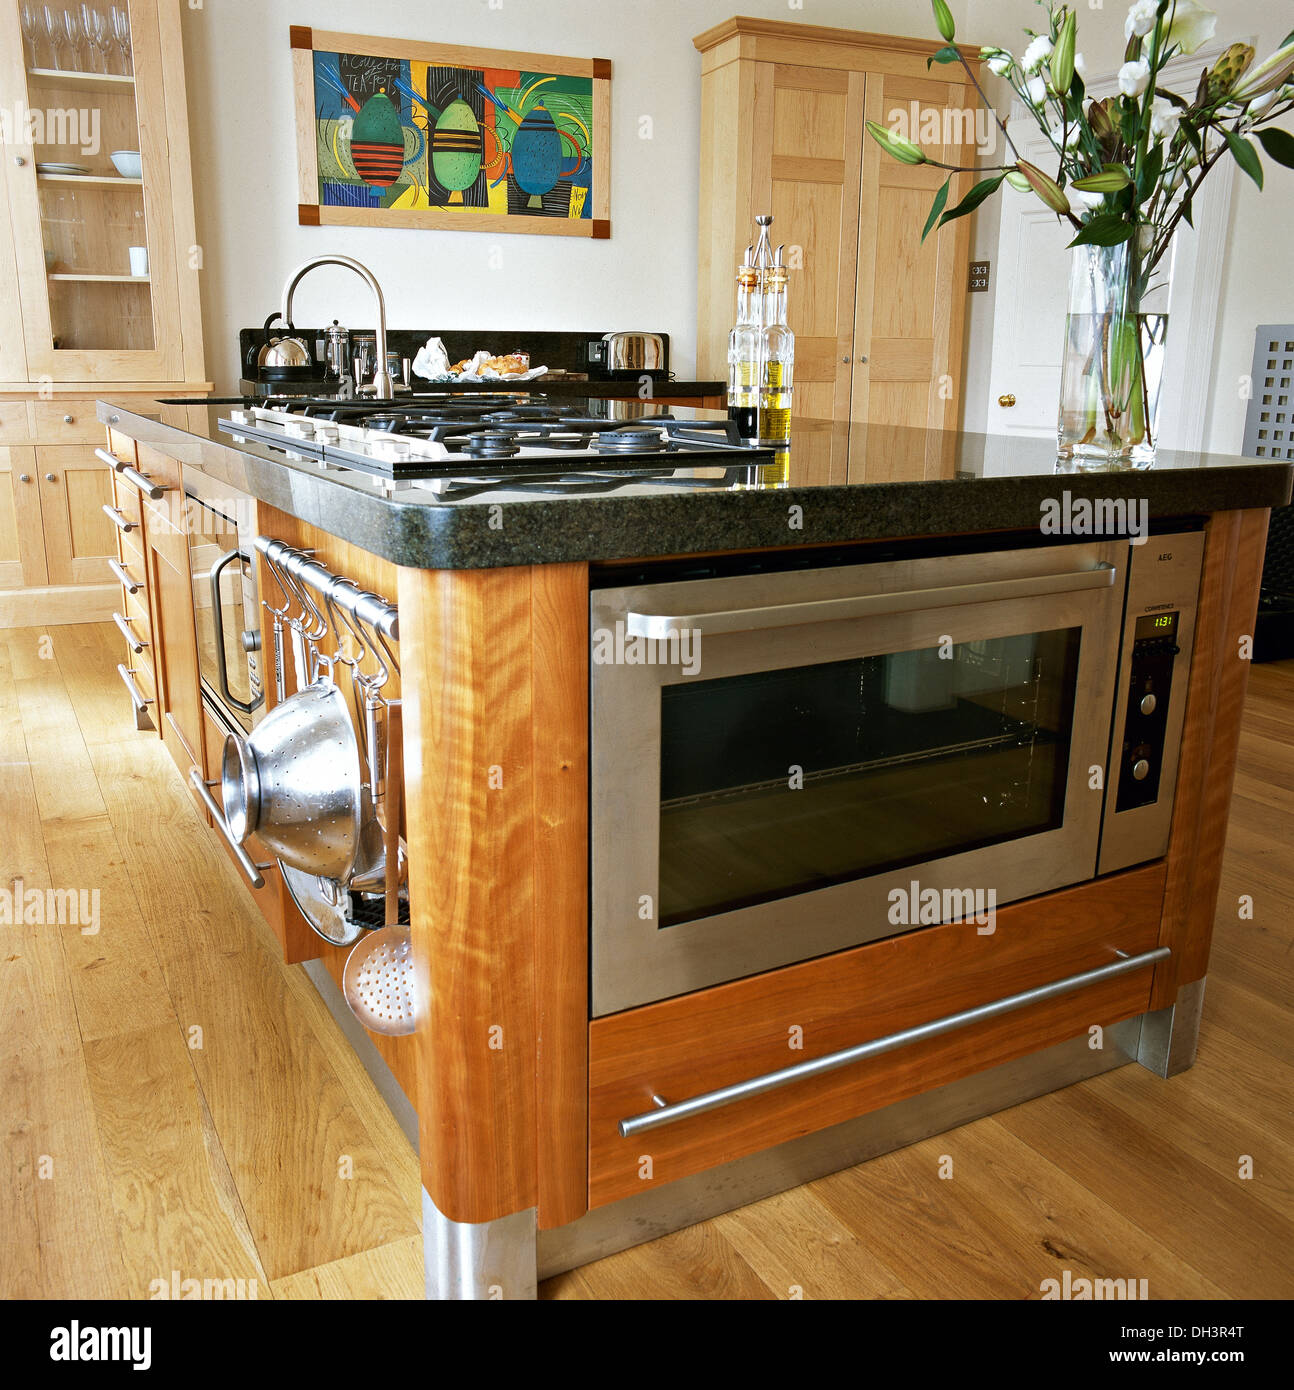 Kitchen Bar With Stove: Stainless Steel Oven And Integral Hob In Central Island